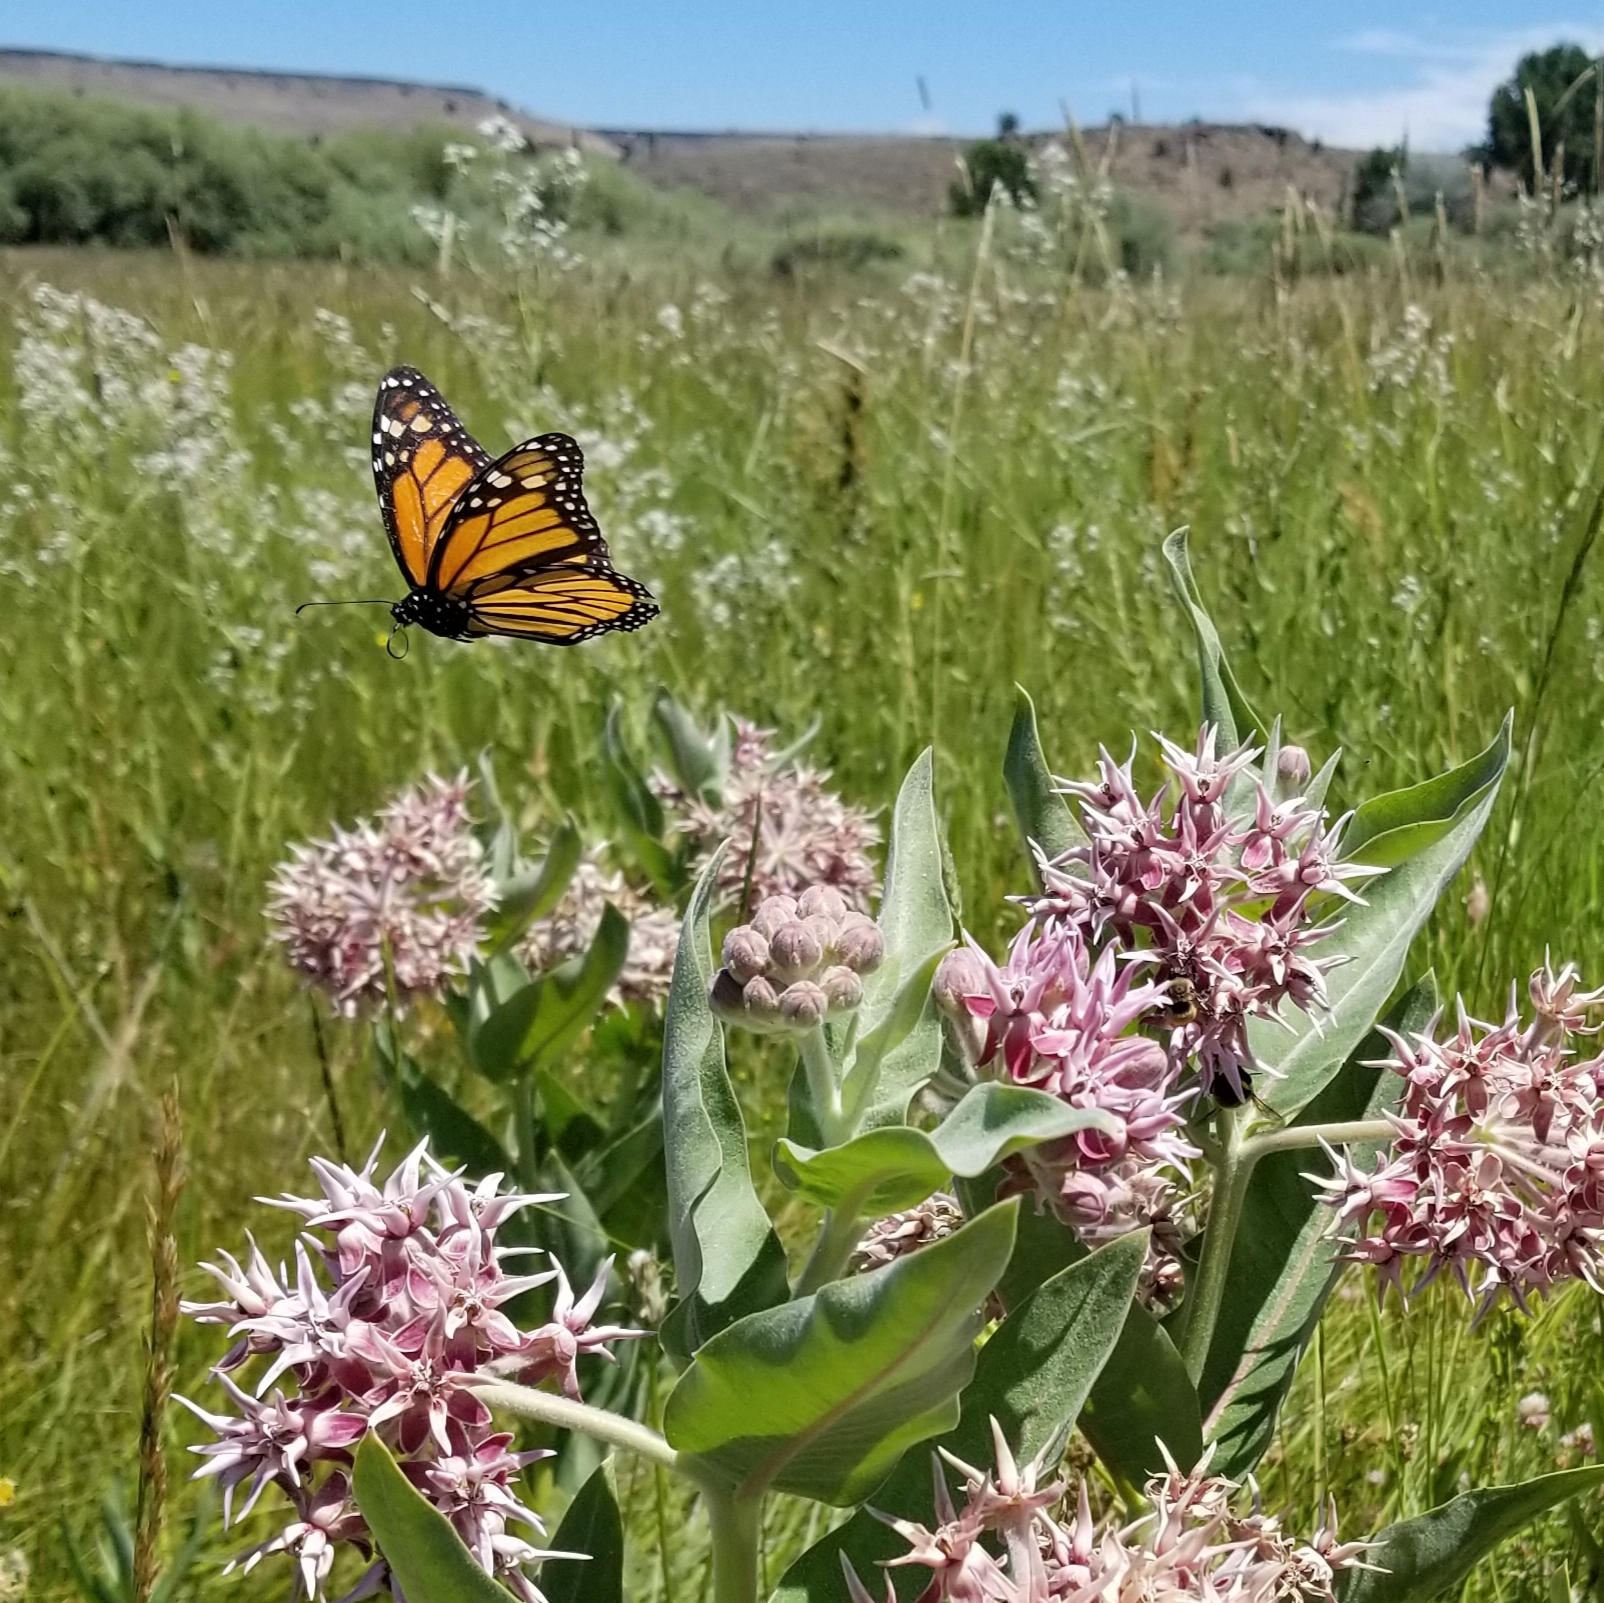 A bright orange monarch flutters over pink milkweed blossoms in a green, grassy landscape.